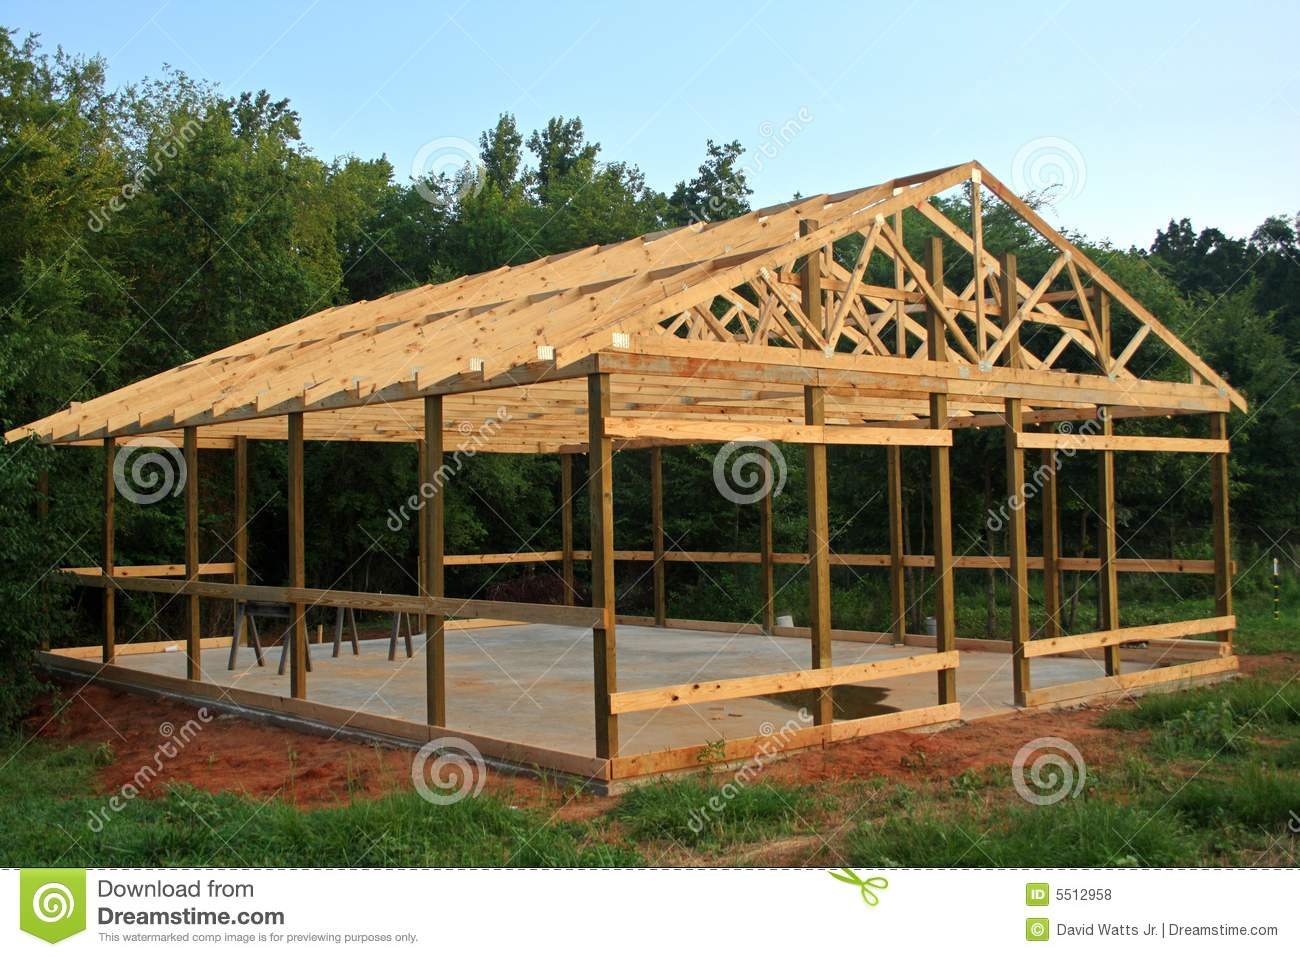 Deliza access how to build pole barn trusses for Pole frame house plans